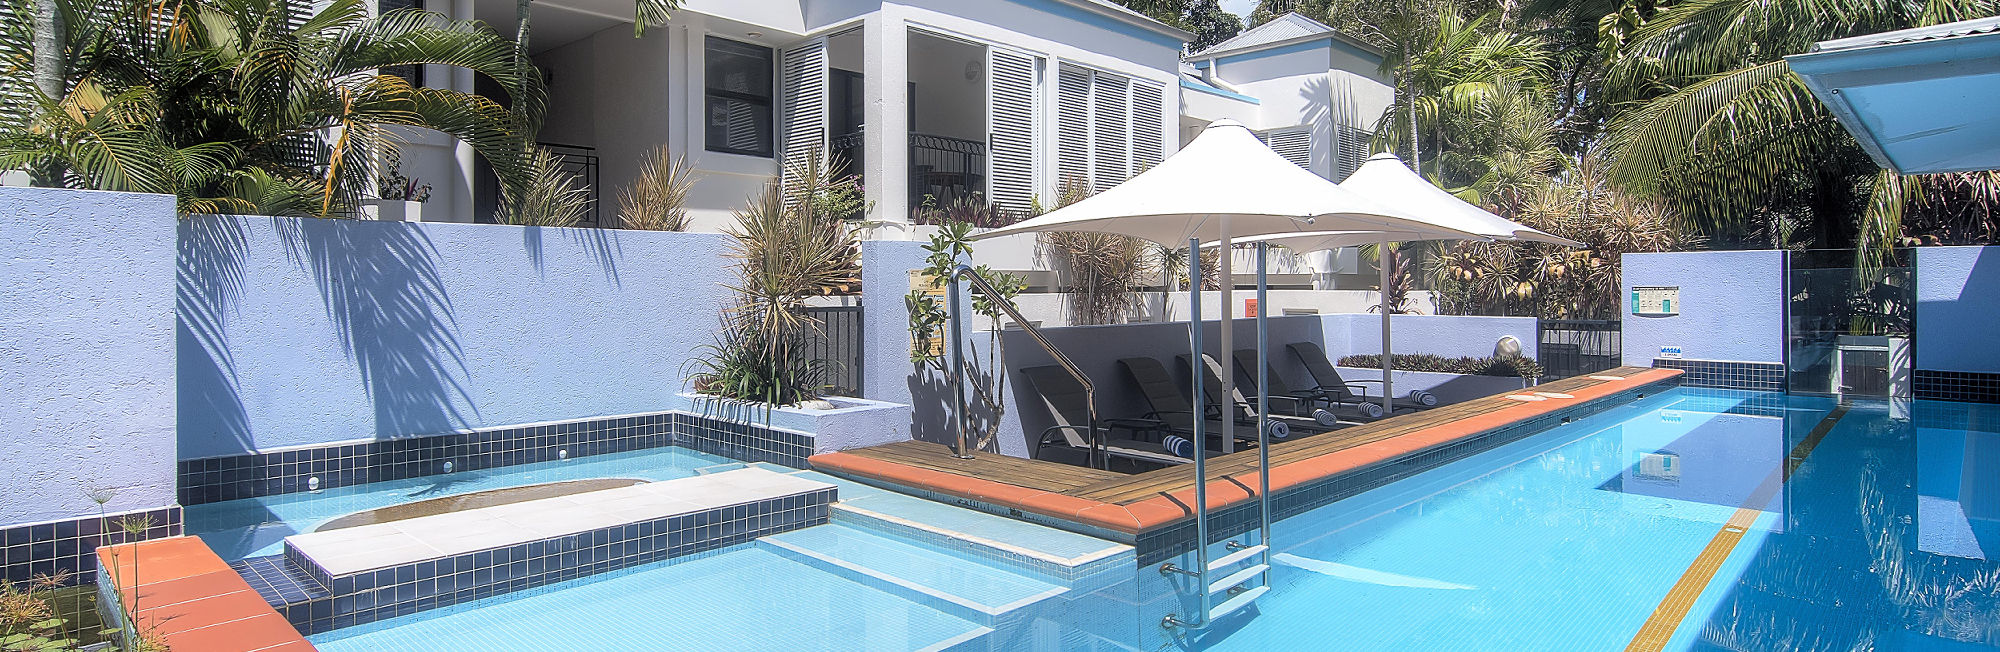 Port Douglas Boutique Holiday Apartments The Pavilions Facilities